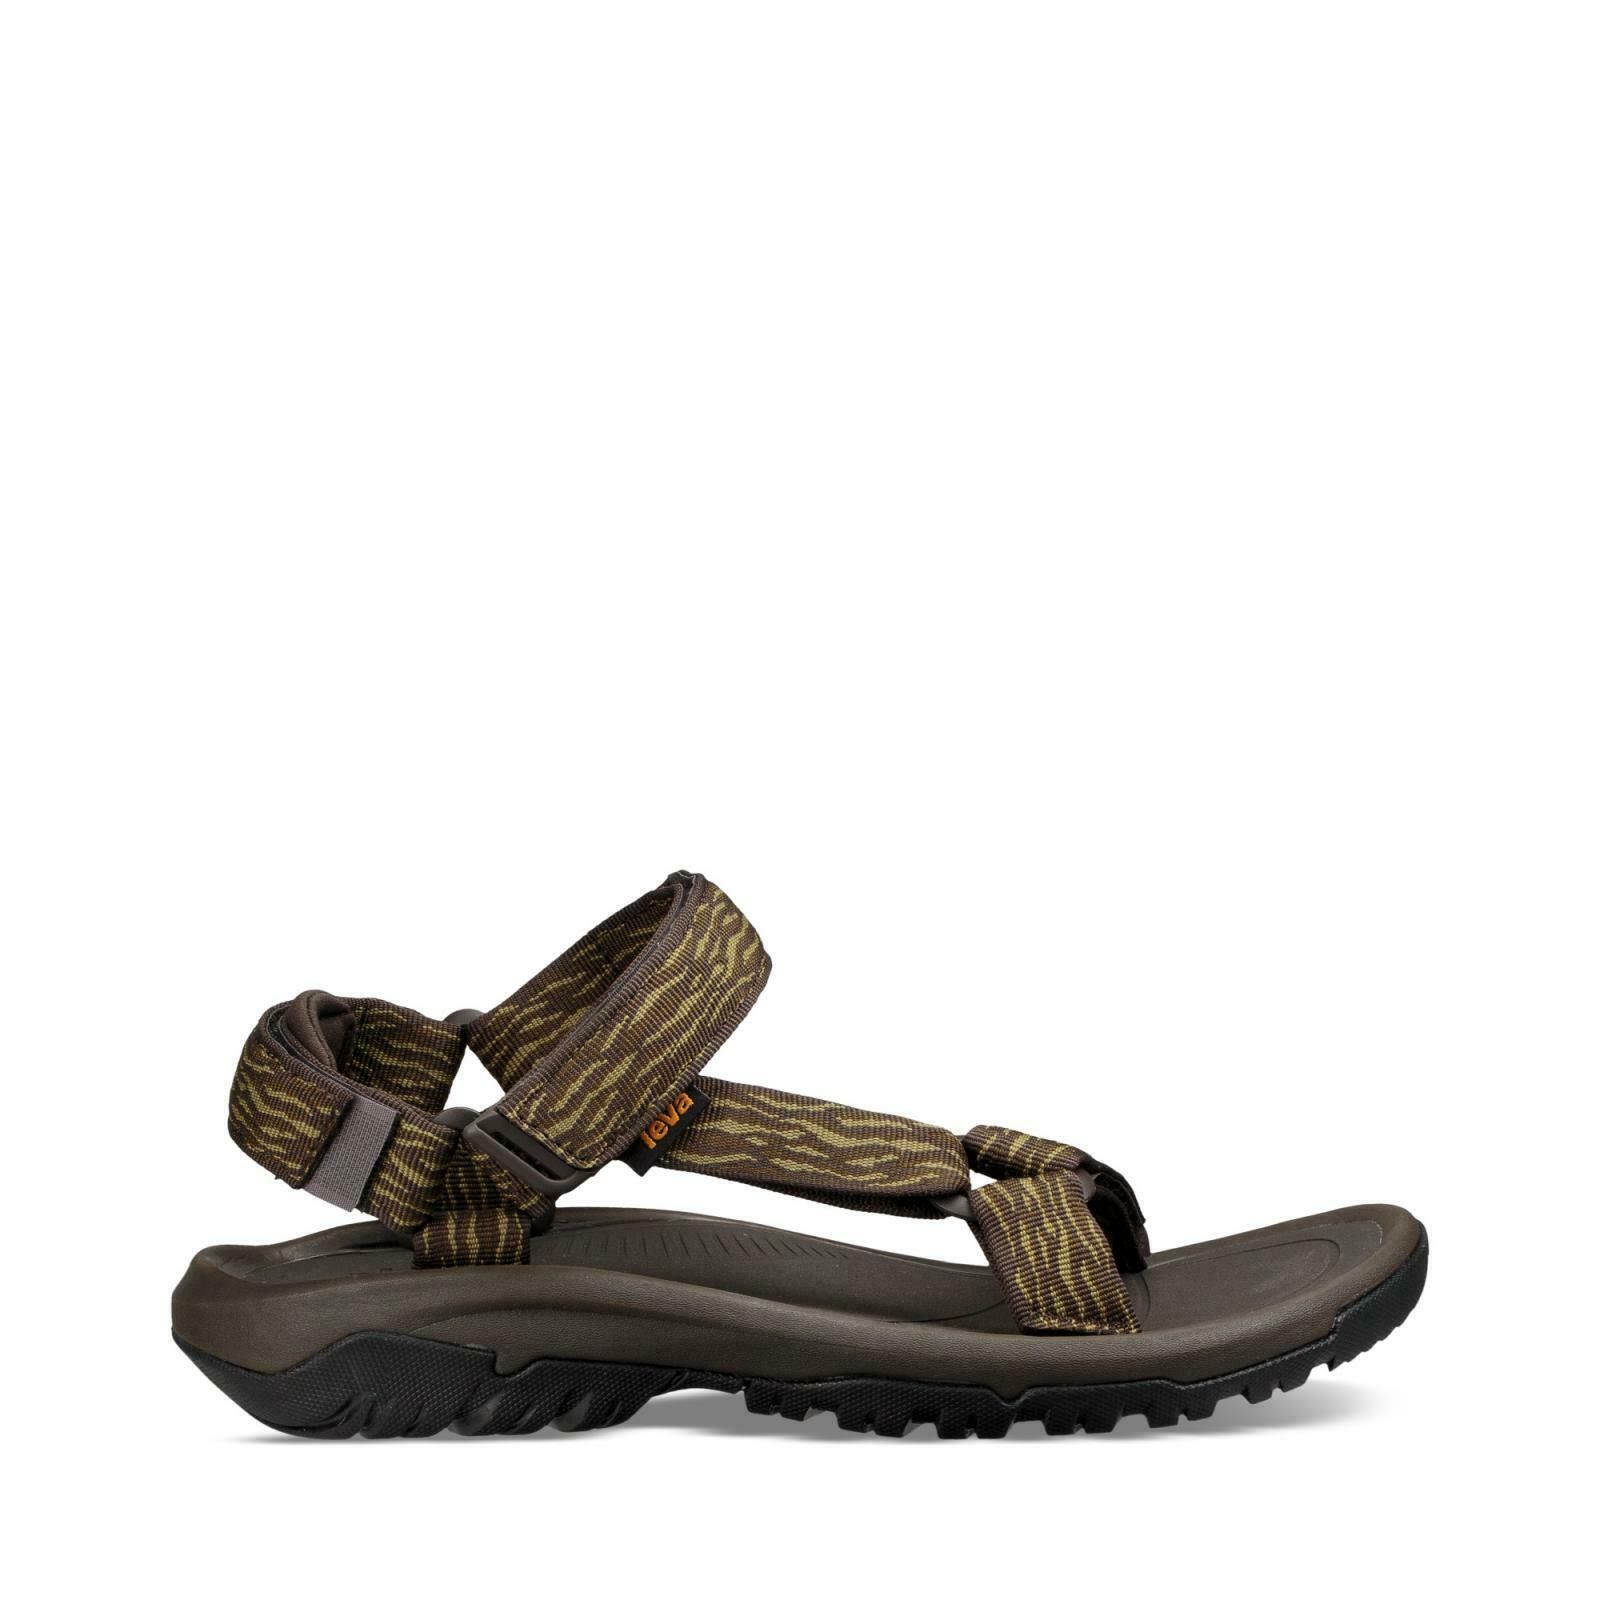 TEVA  HURRICANE XLT 2   MENS SANDALS. RAPIDS BLACK OLIVE